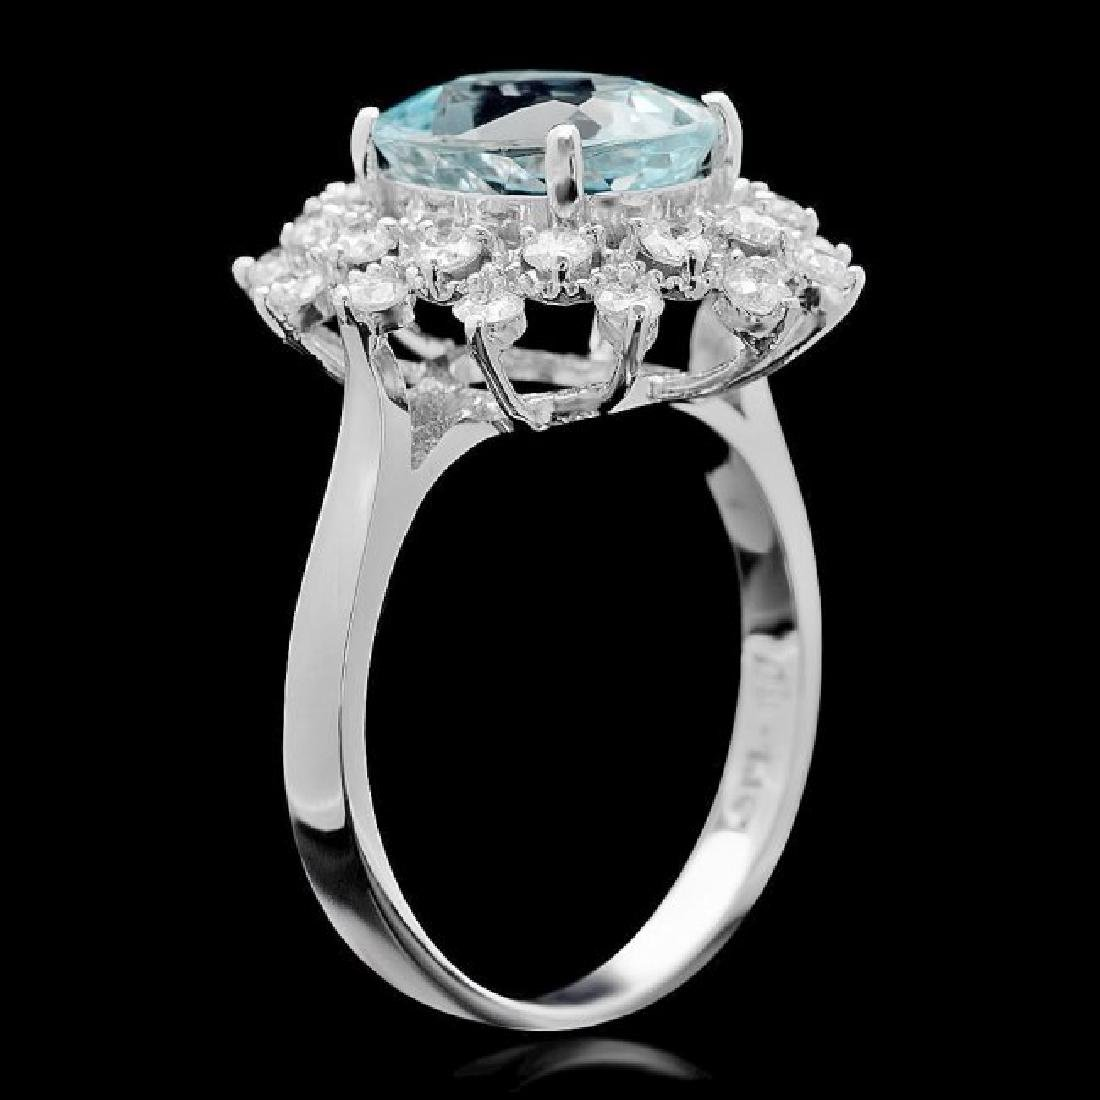 14k Gold 2.70ct Aquamarine 0.75ct Diamond Ring - 3